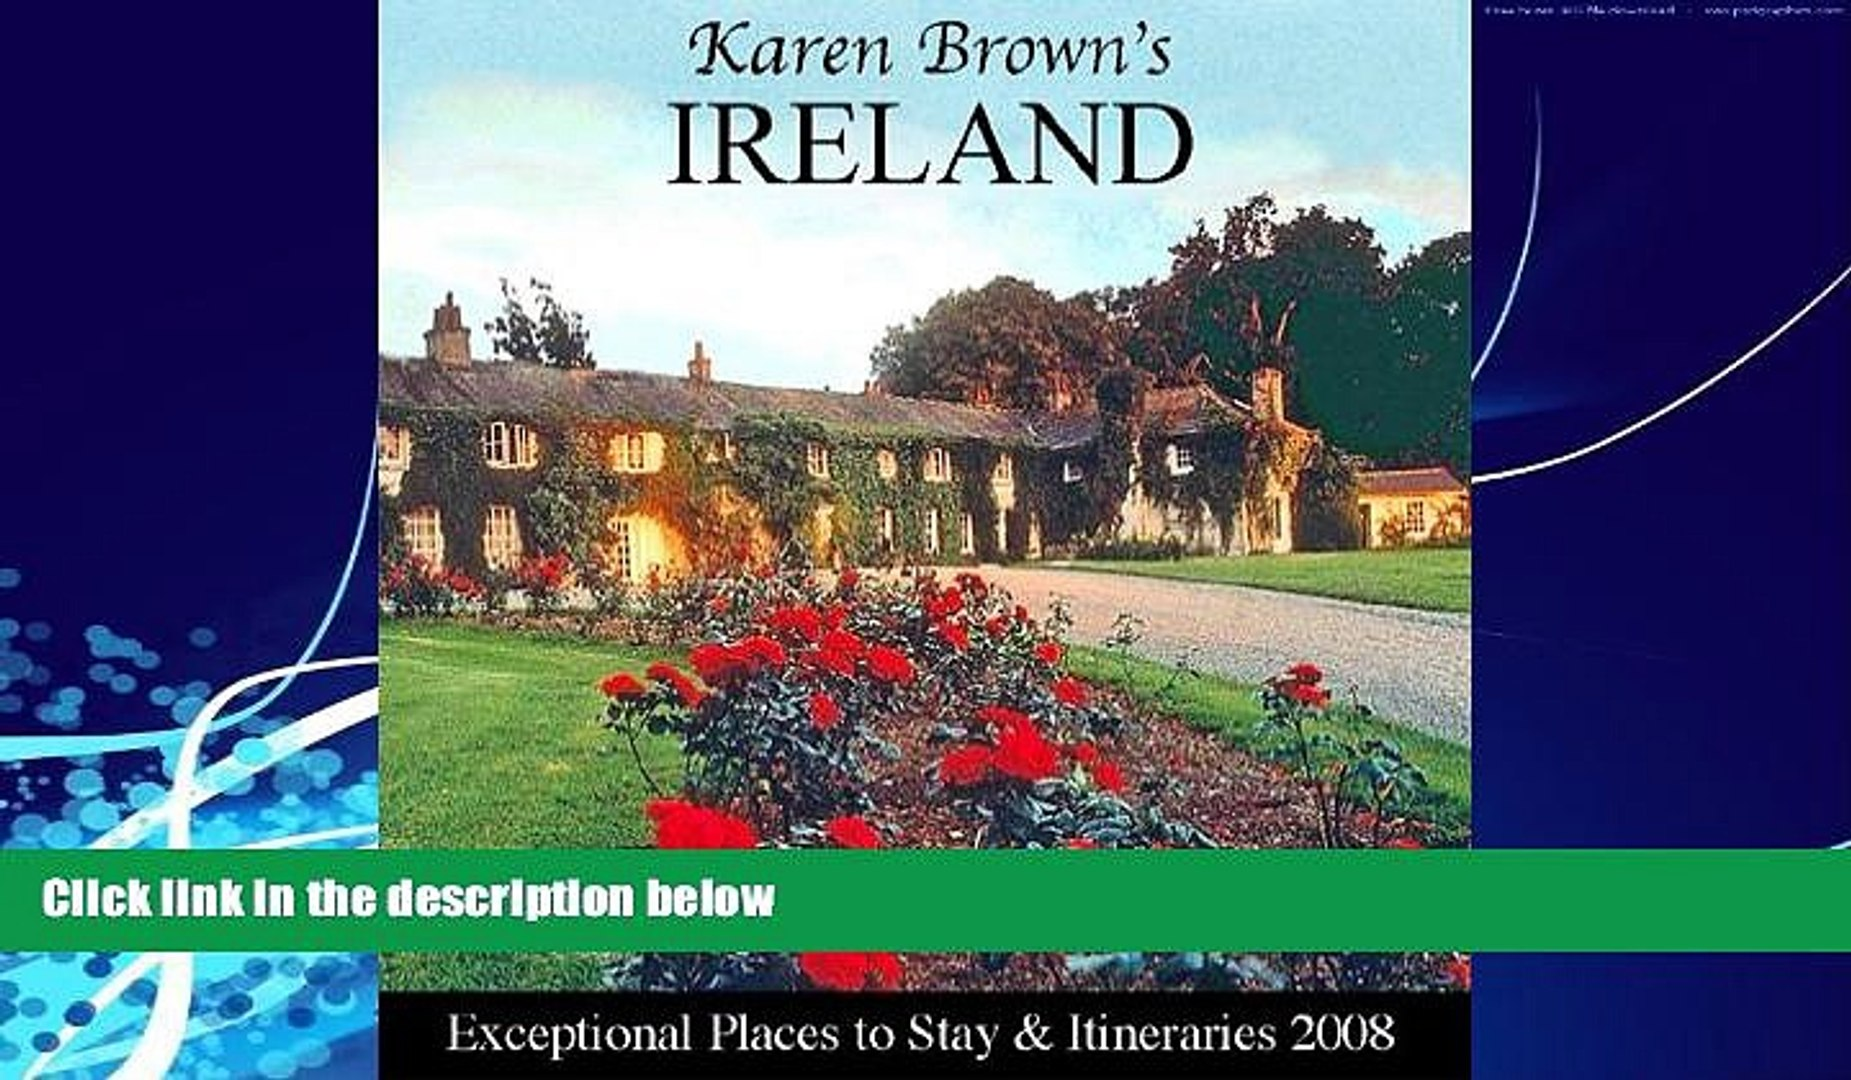 Books to Read  Karen Brown s Ireland 2008: Exceptional Places to Stay and Itineraries (Karen Brown